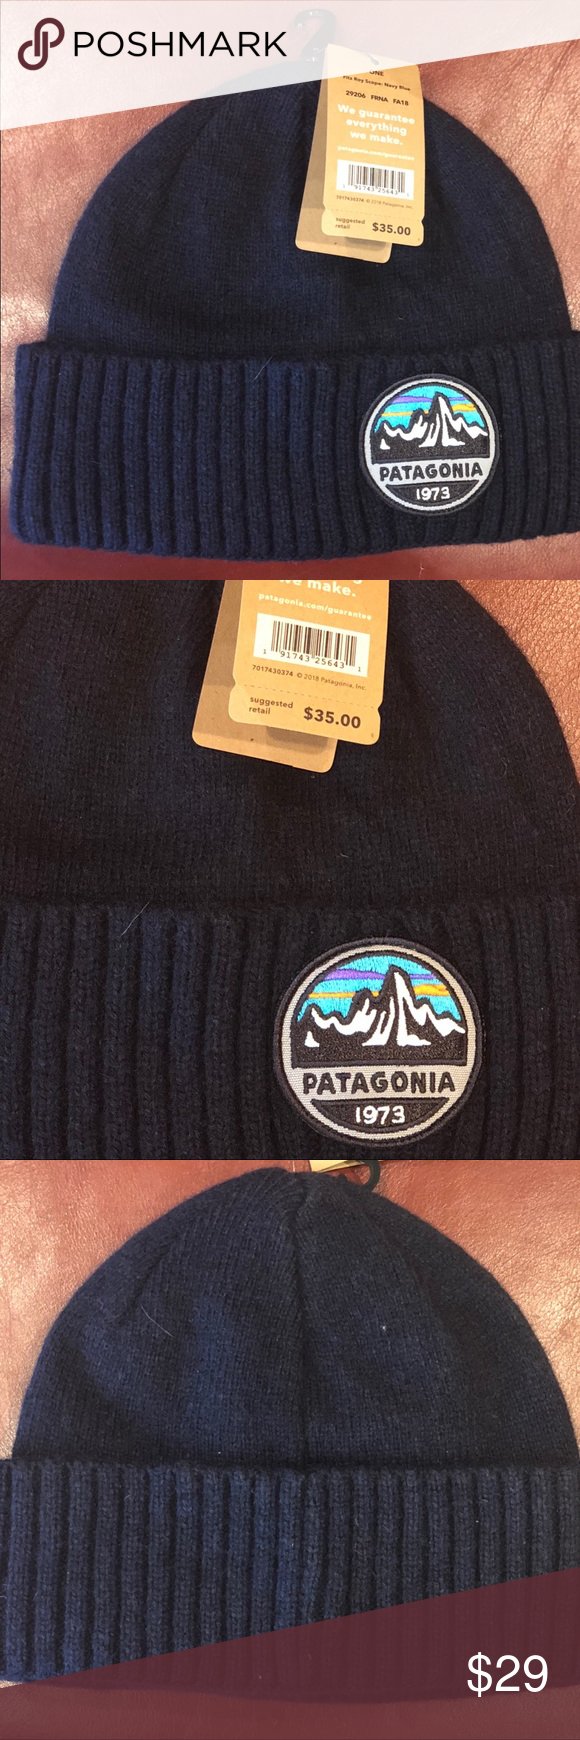 d6079a04487 Patagonia Brodeo Beanie Patagonia Brodeo Beanie Fitz Roy Scope- Navy Blue  Snug fit that will loosen with wear 70% recycled wool 26% recycled nylon 4%  other ...